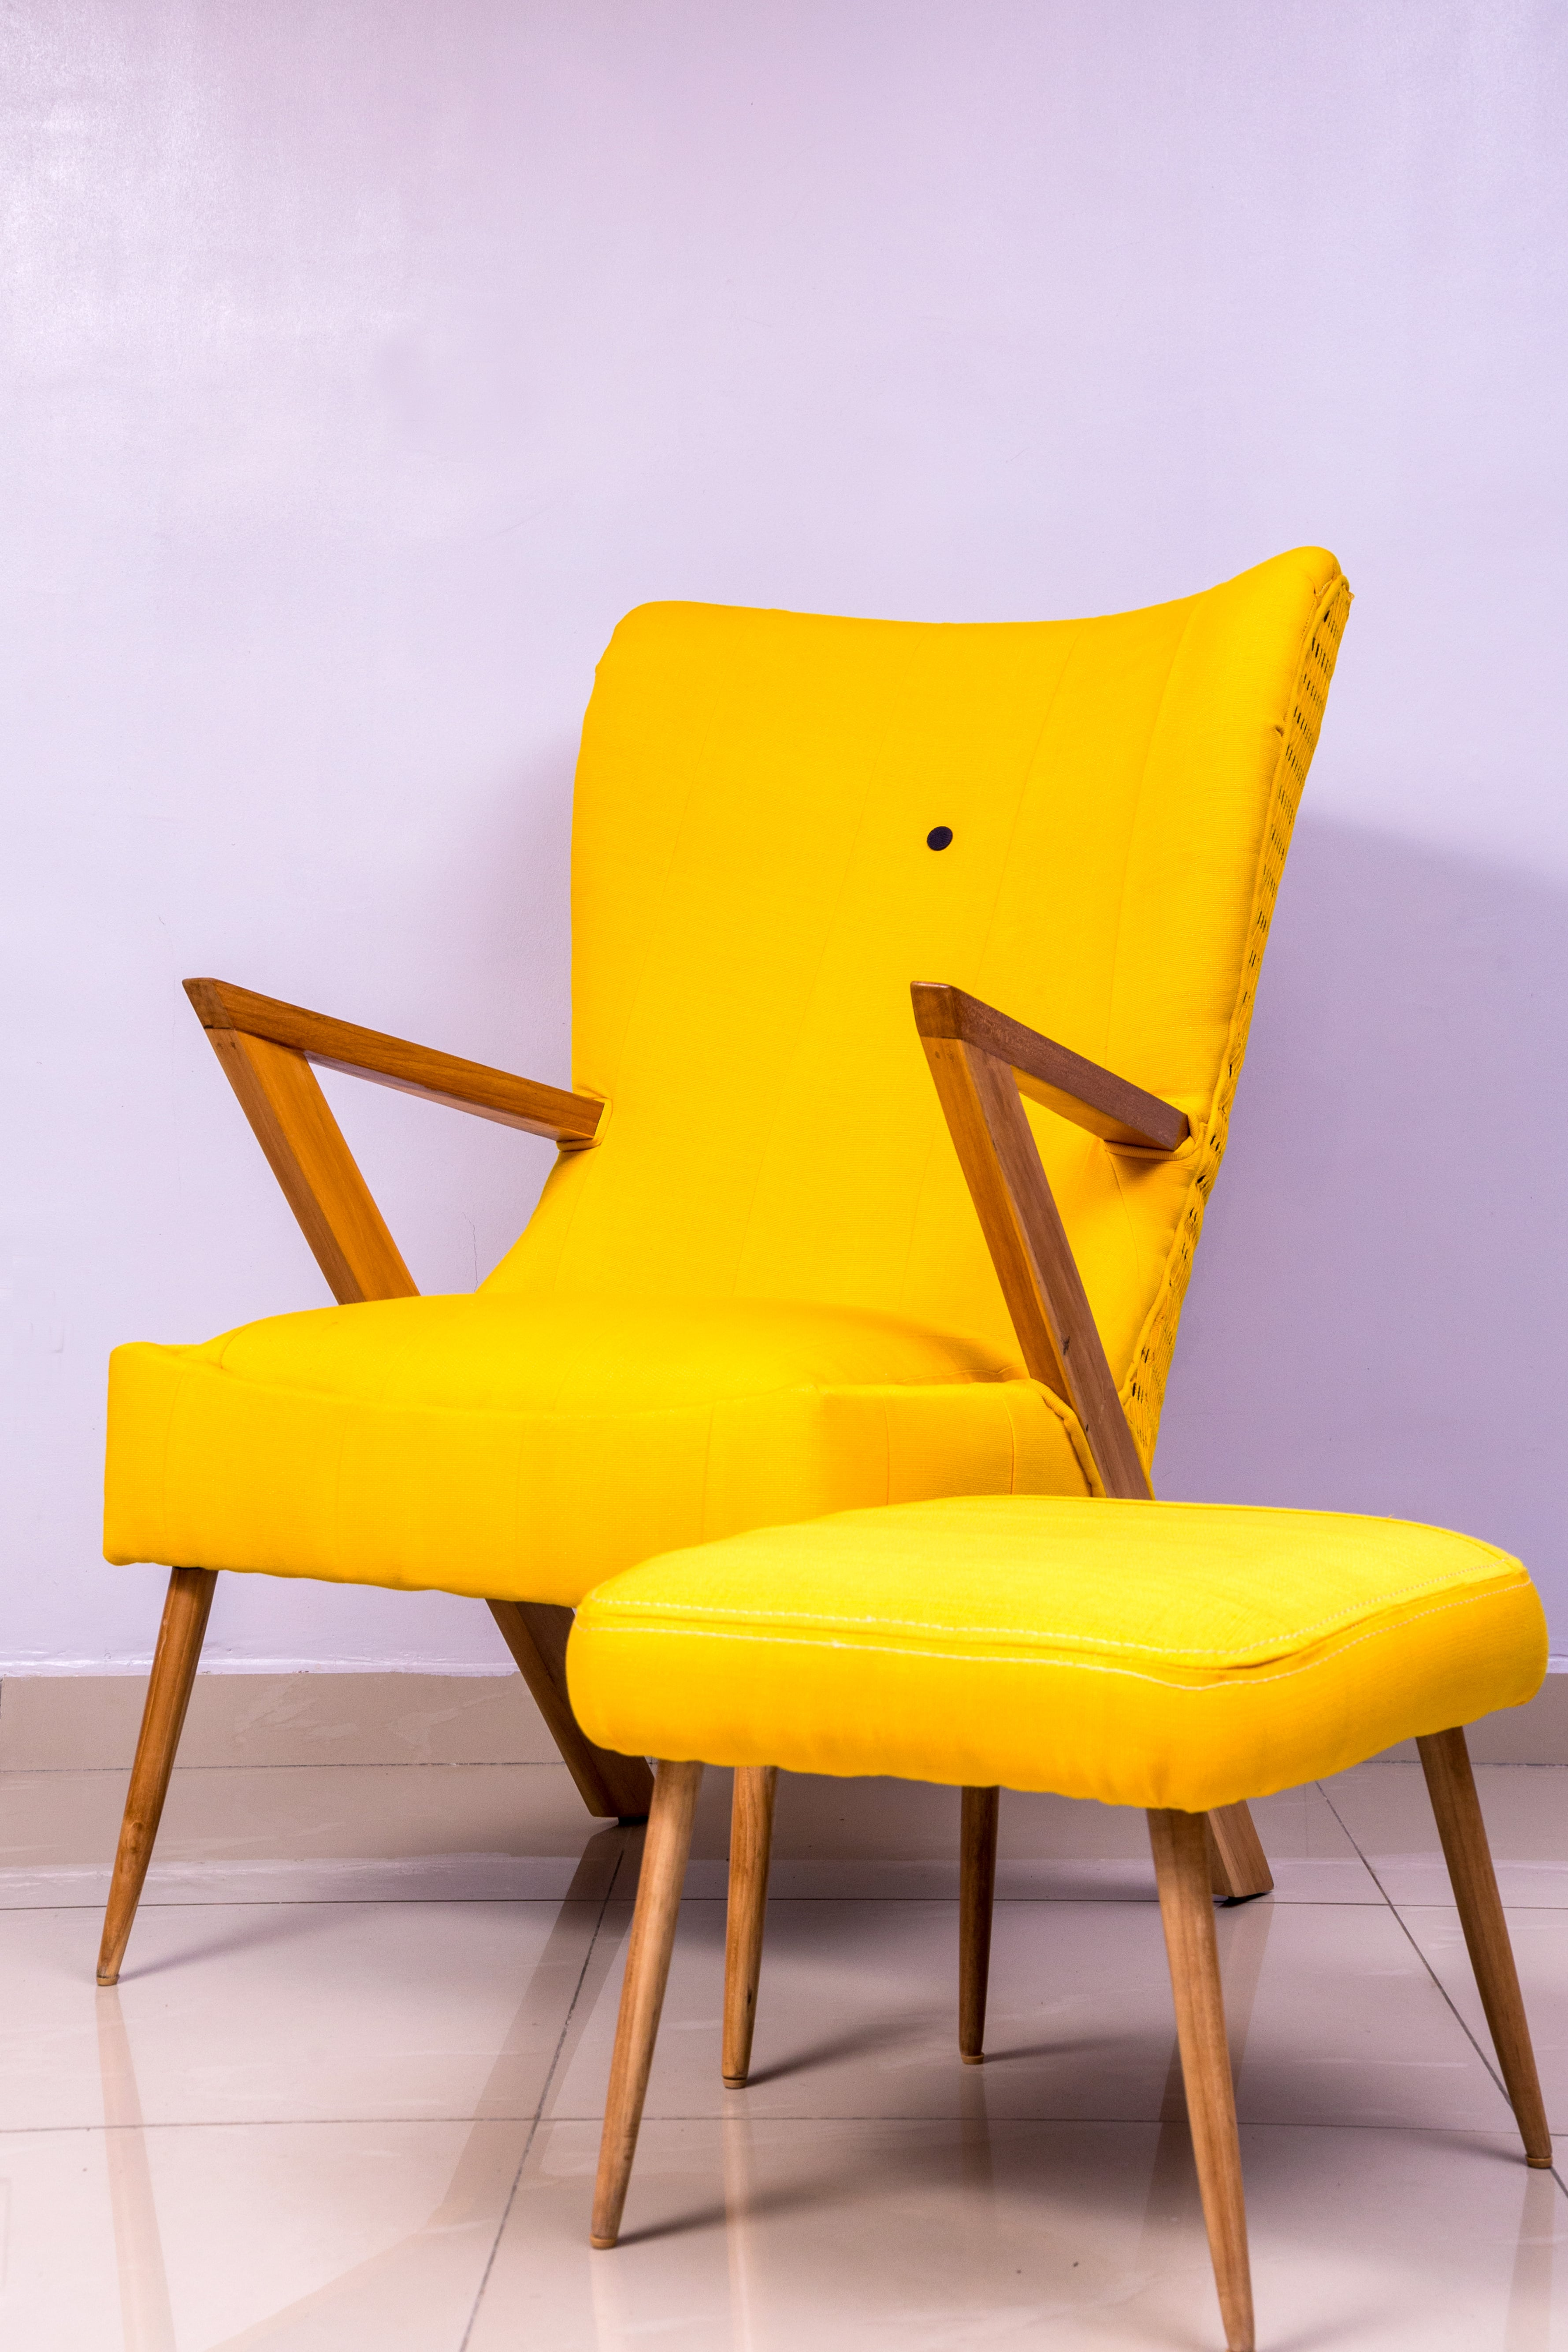 Adunni pon chair by Ile.Ila (House of Lines)